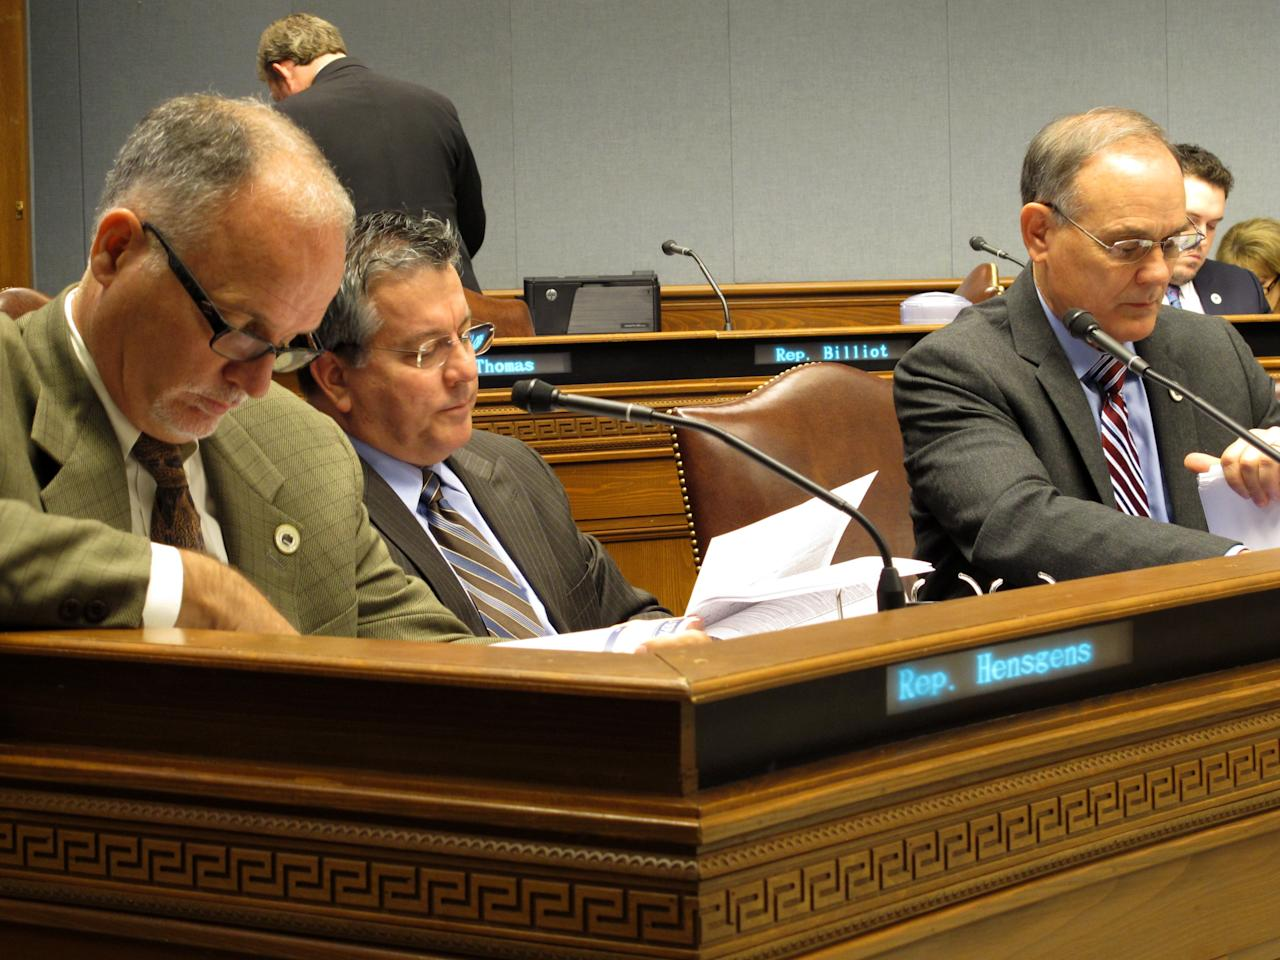 """<p> Reps. Bob Hensgens, R-Abbeville; Jerome """"Zee"""" Zeringue, R-Houma; and Tony Bacala, R-Prairieville, from left to right, look through budget documents, on Wednesday, Dec. 7, 2016, in Baton Rouge, La. The House Appropriations Committee has been holding hearings about how agencies are spending their money this year and what they're requesting next year. (AP Photo/Melinda Deslatte) </p>"""